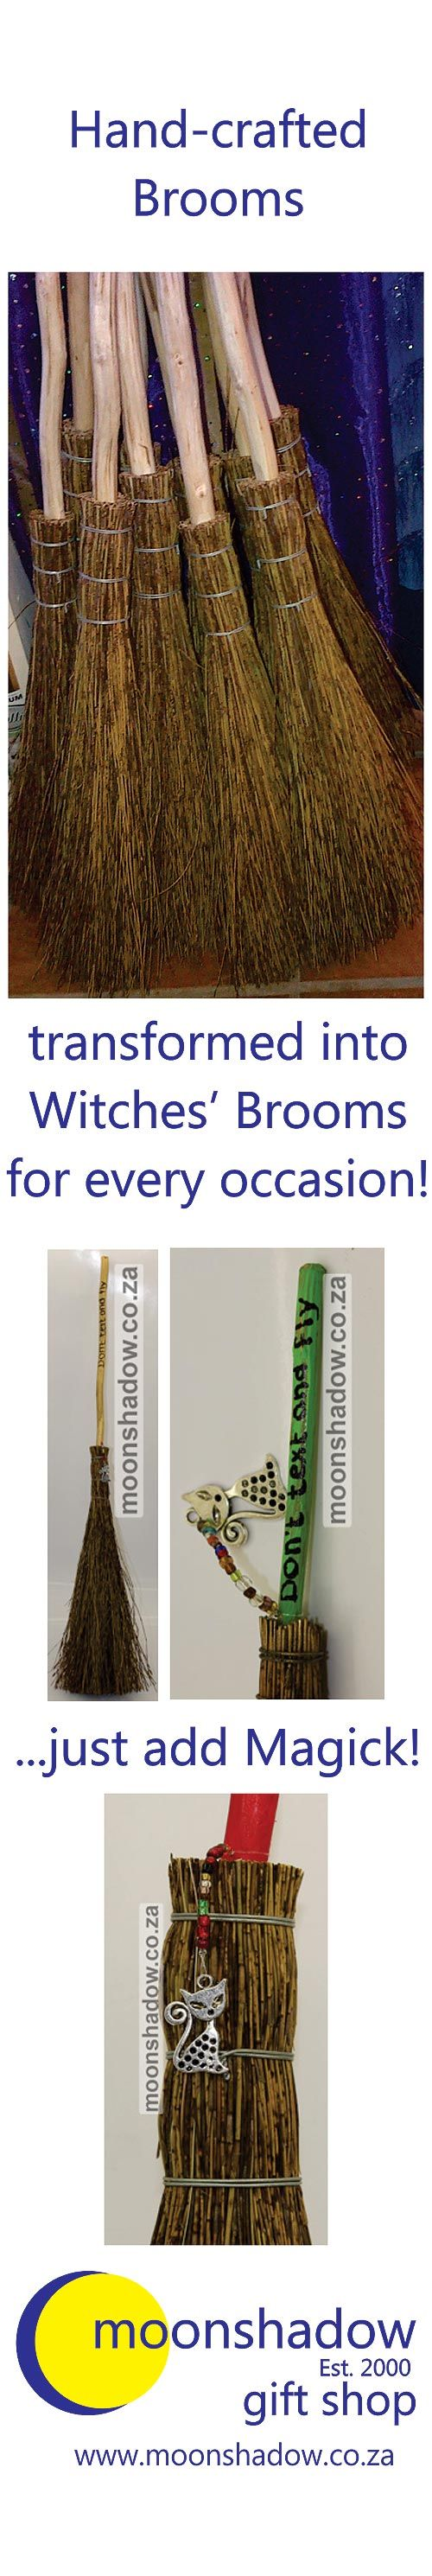 Hand-crafted brooms, decorated in our studio and transformed into Witches' Brooms for any occasion. Available from our Online Shop.   #Swellendam #SouthAfrica #Witch